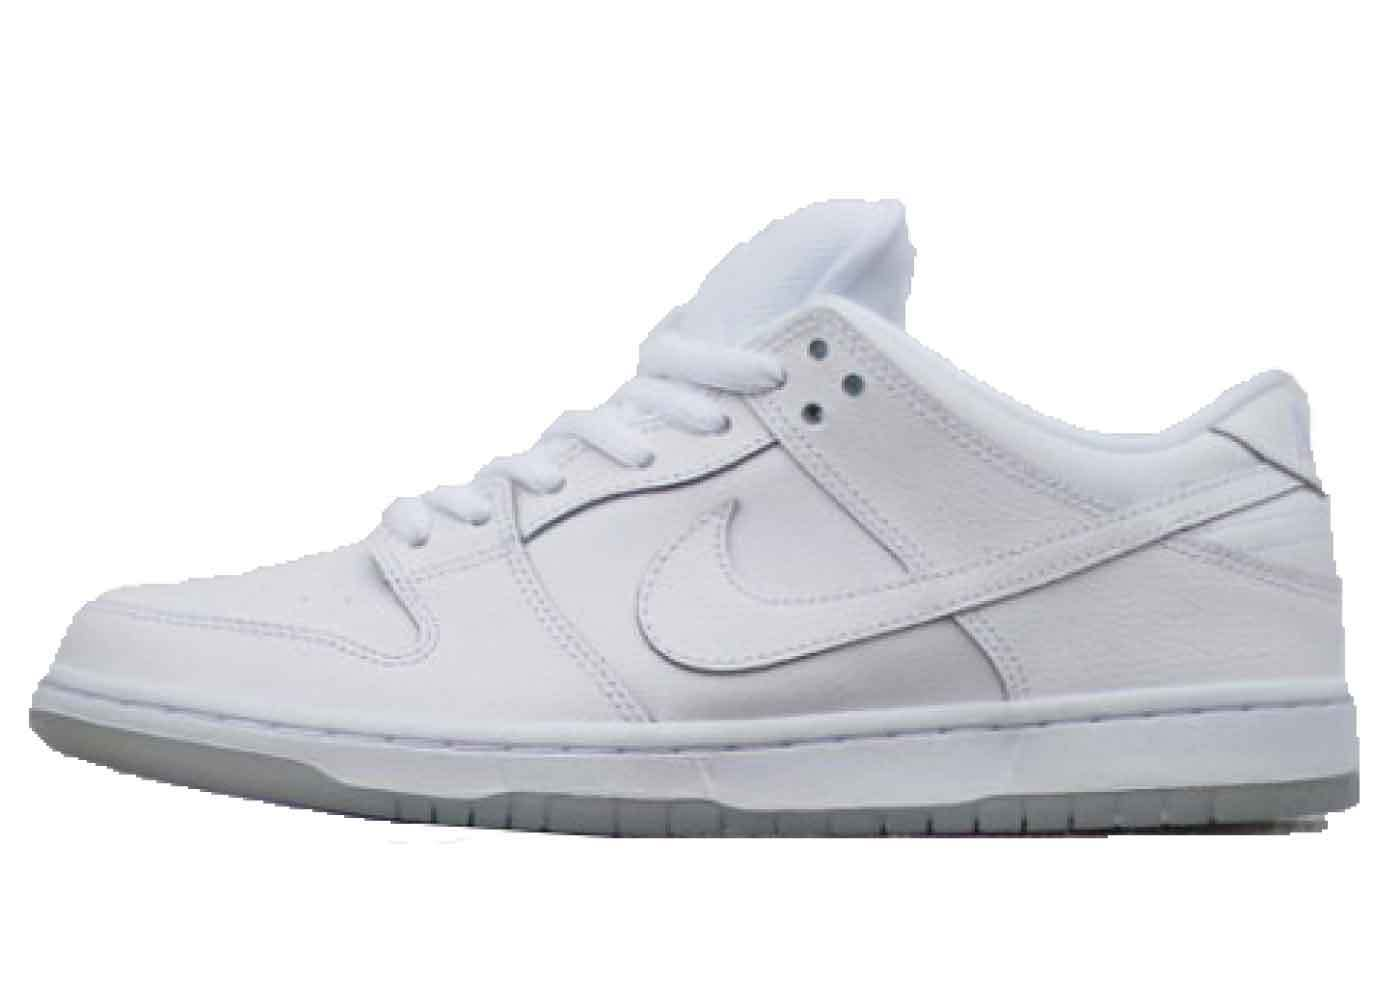 Nike SB Dunk Low White Iceを安心売買 -モノカブ